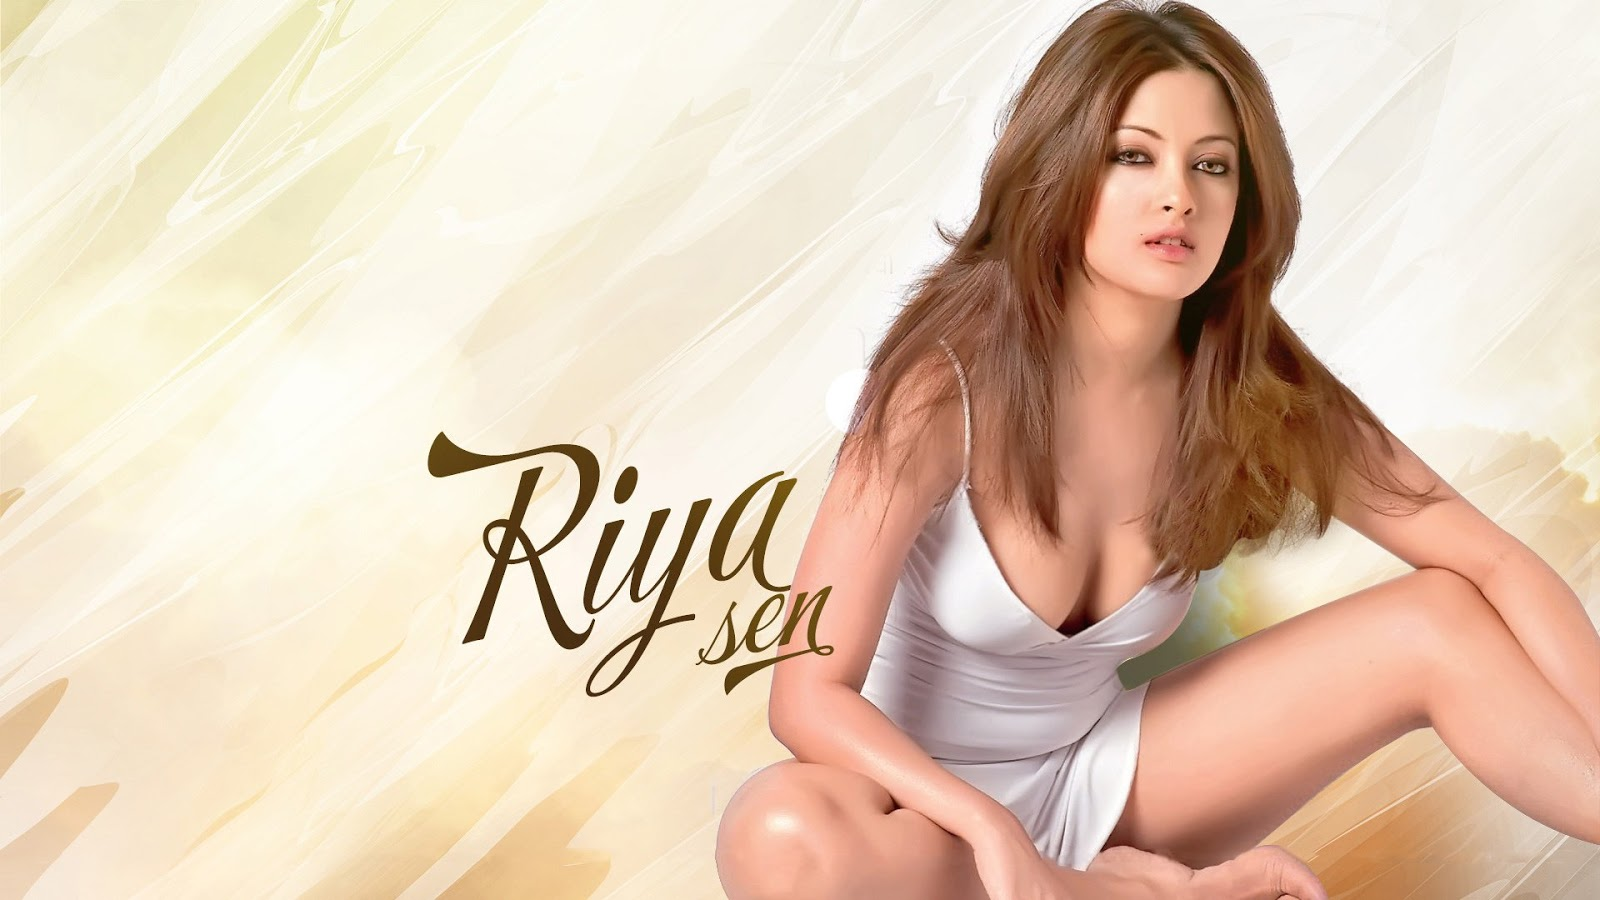 riya sen hot cute wallpapers ~ open picture - free hd wallpapers